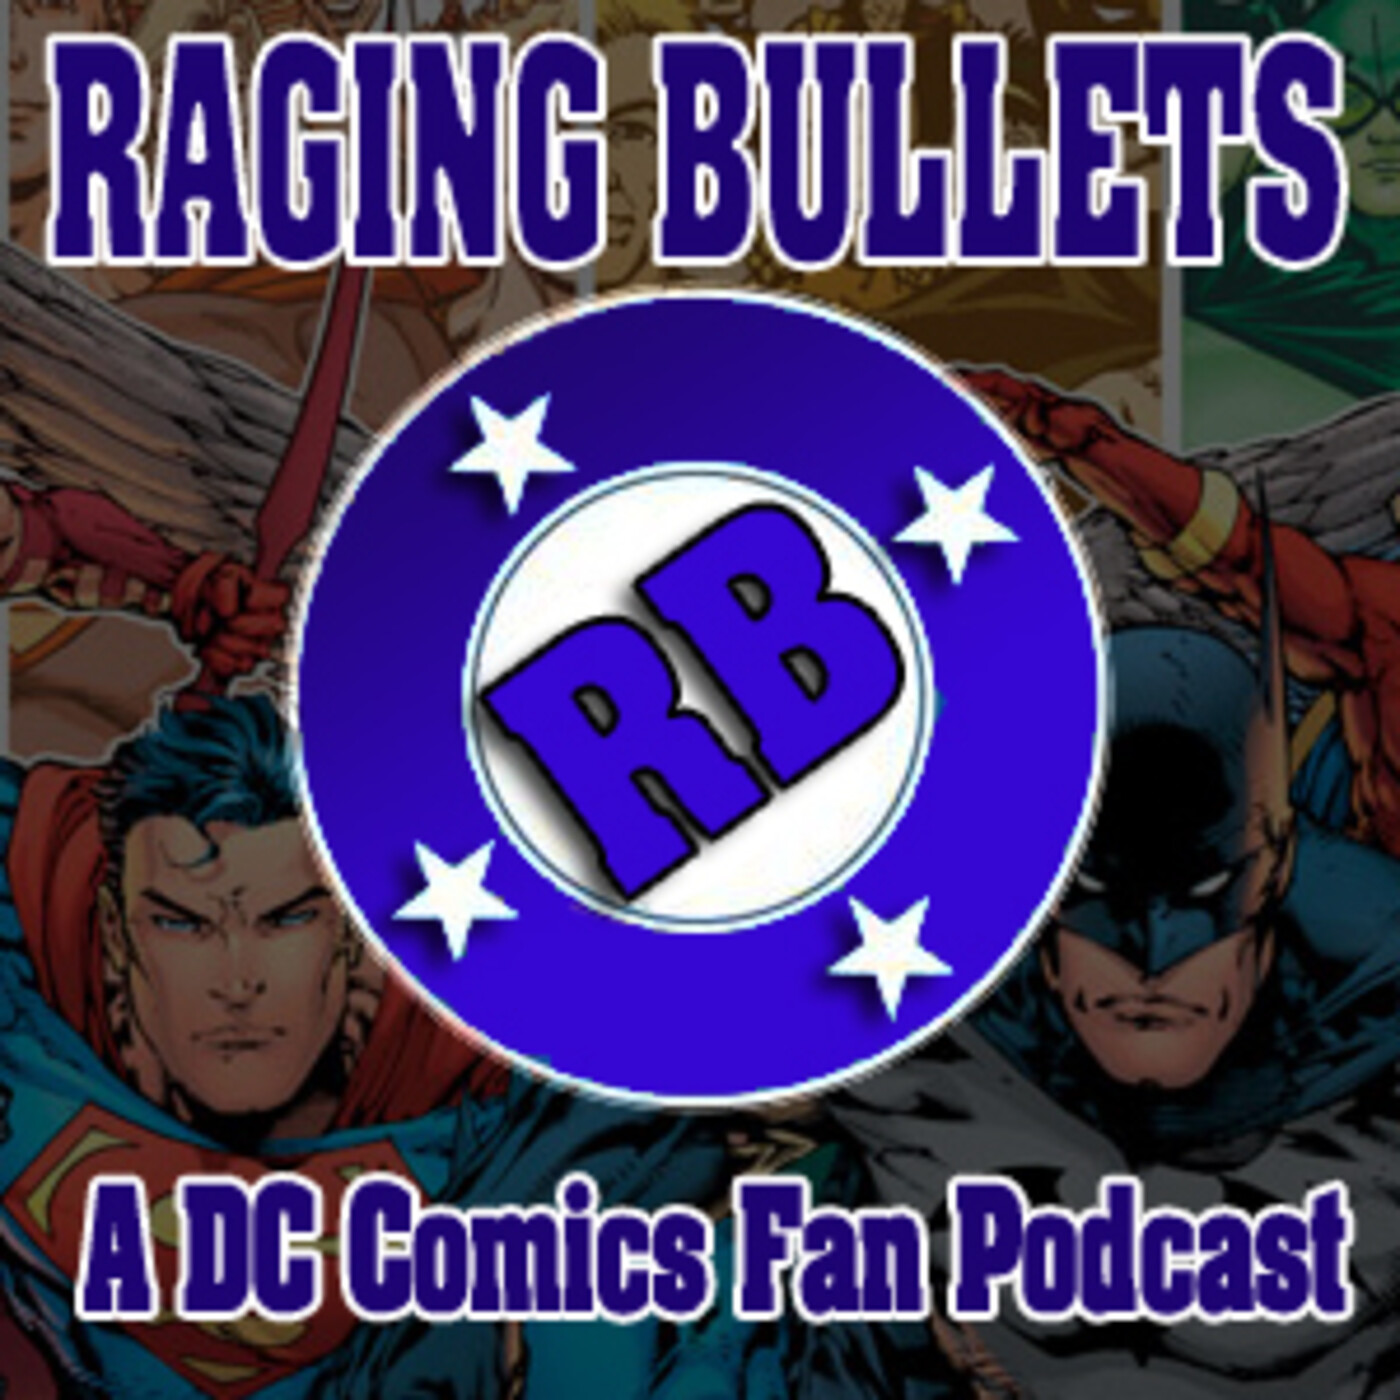 Raging Bullets Episode 486 : A DC Comics Fan Podcast